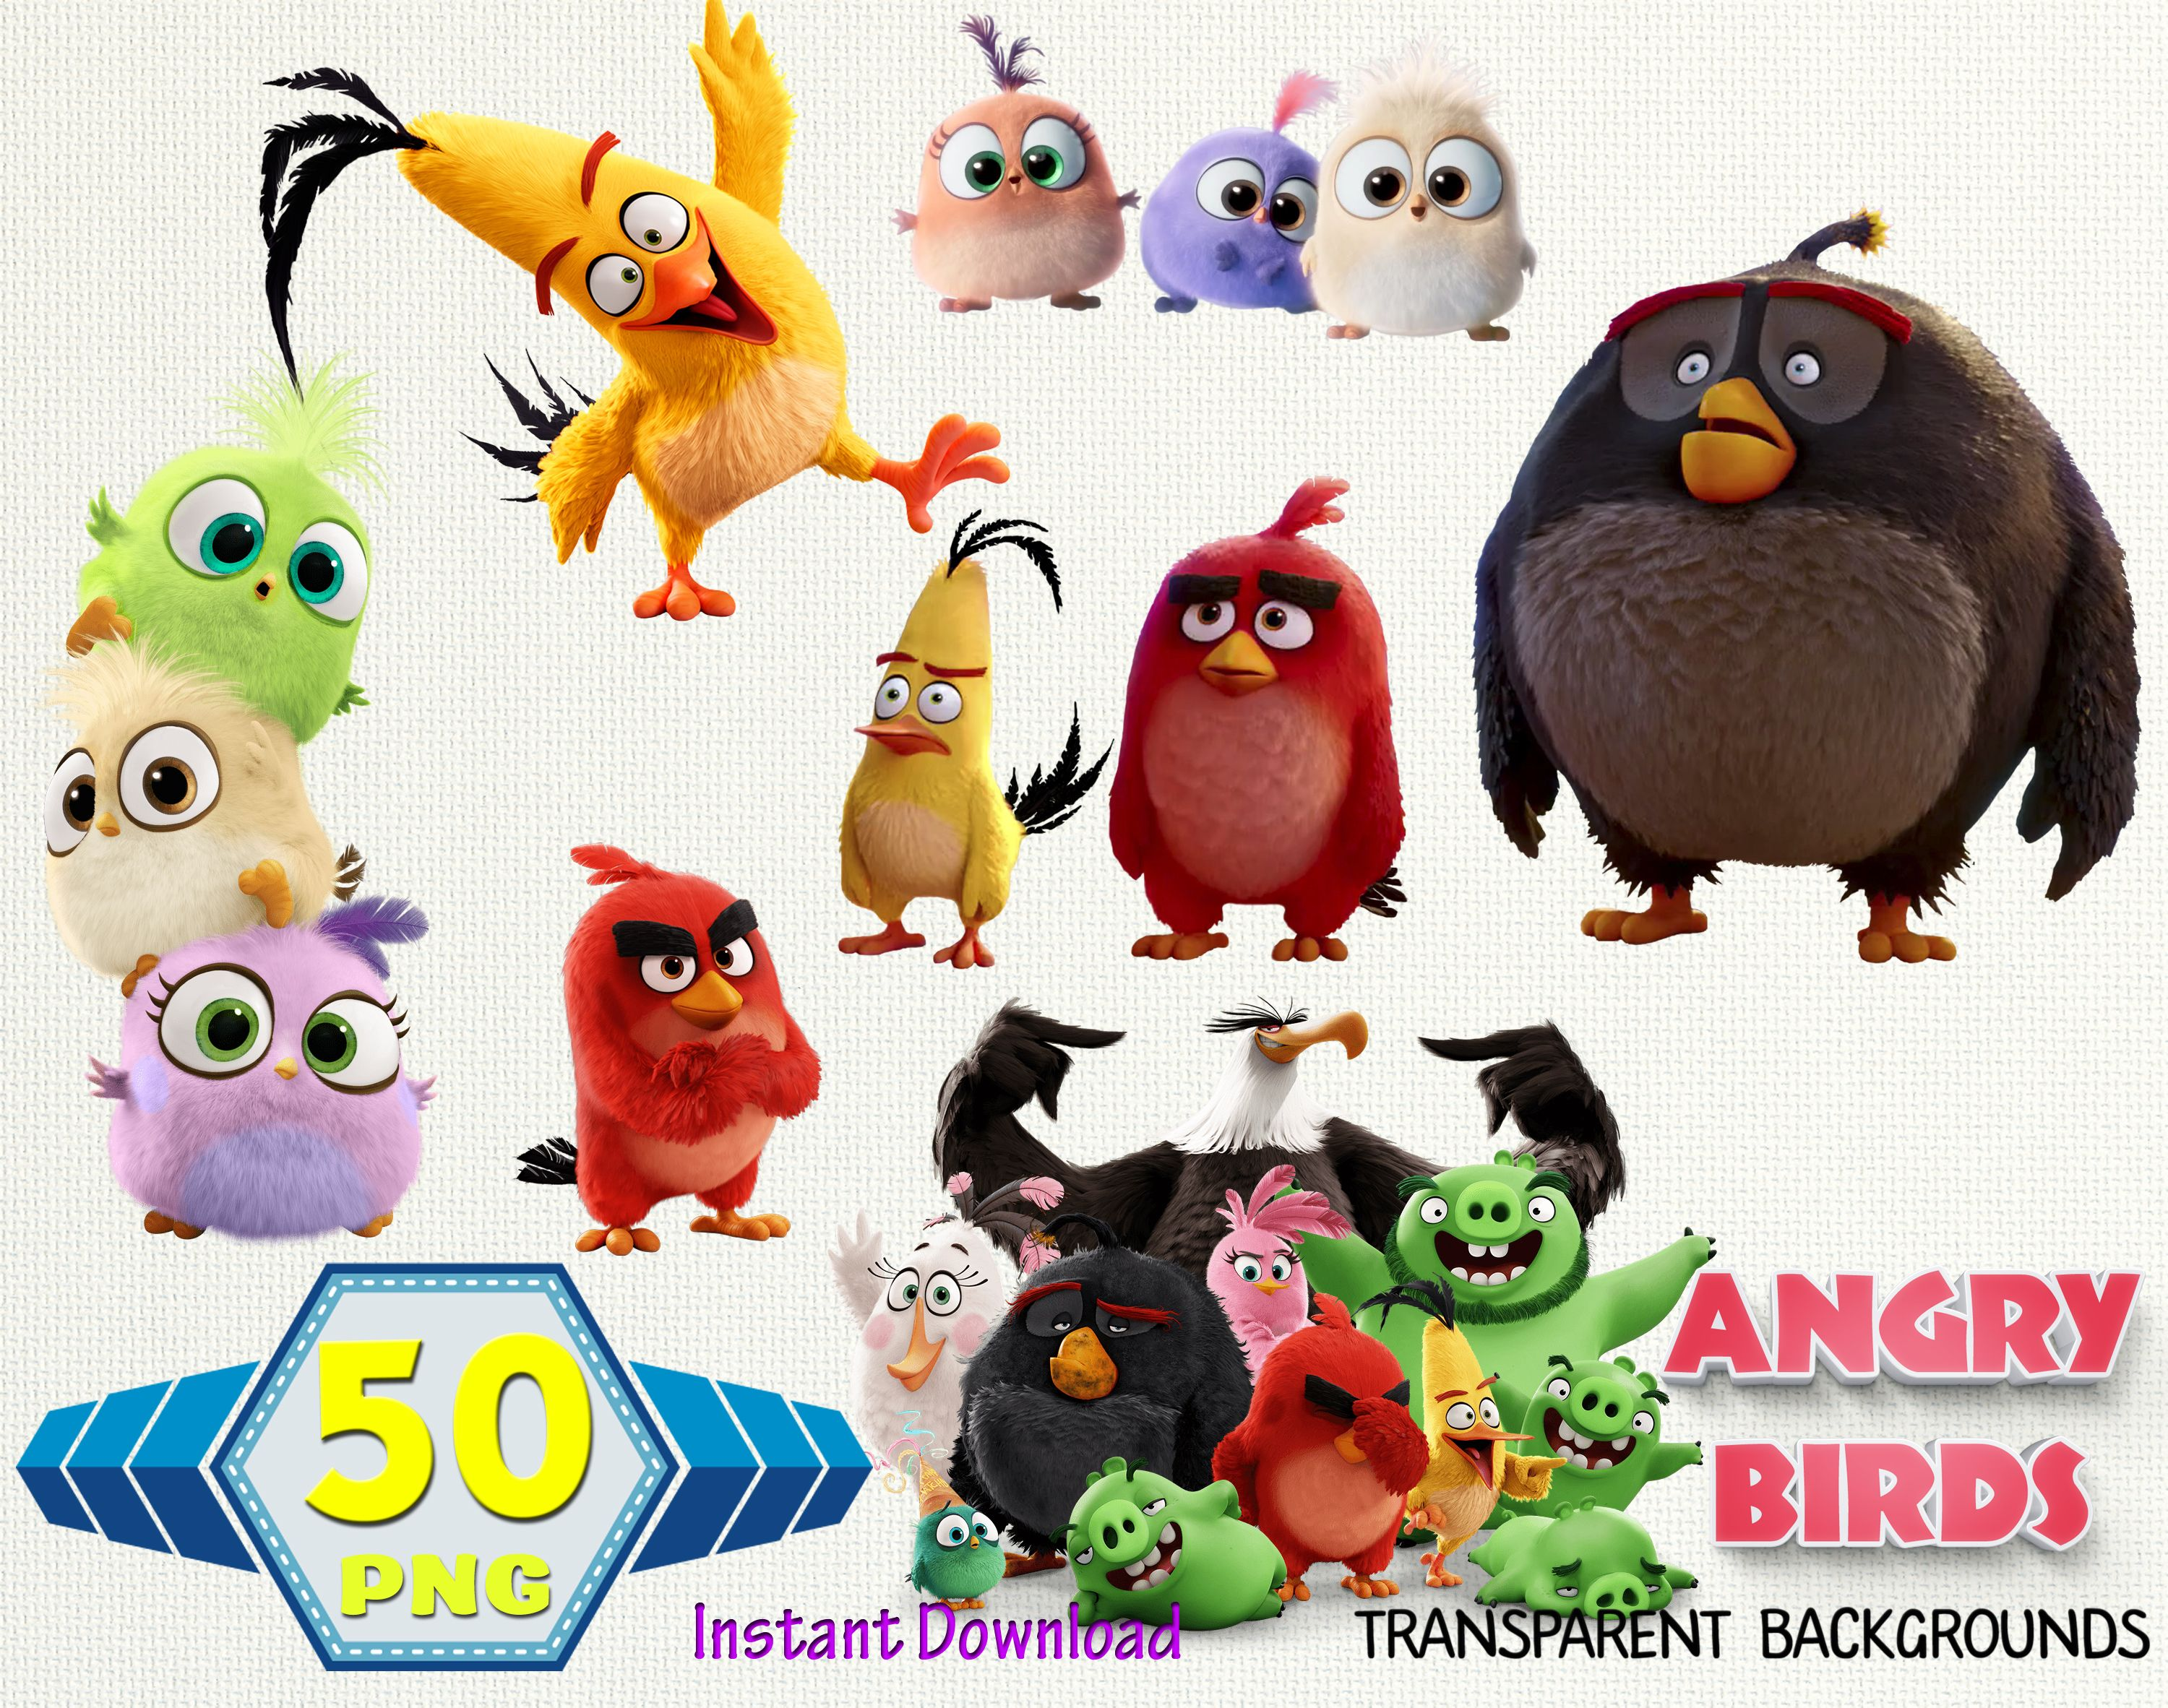 Angry Birds Clipart Angry Birds Images Angry Birds Png Etsy In 2021 Bird Clipart Angry Bird Pictures Clip Art